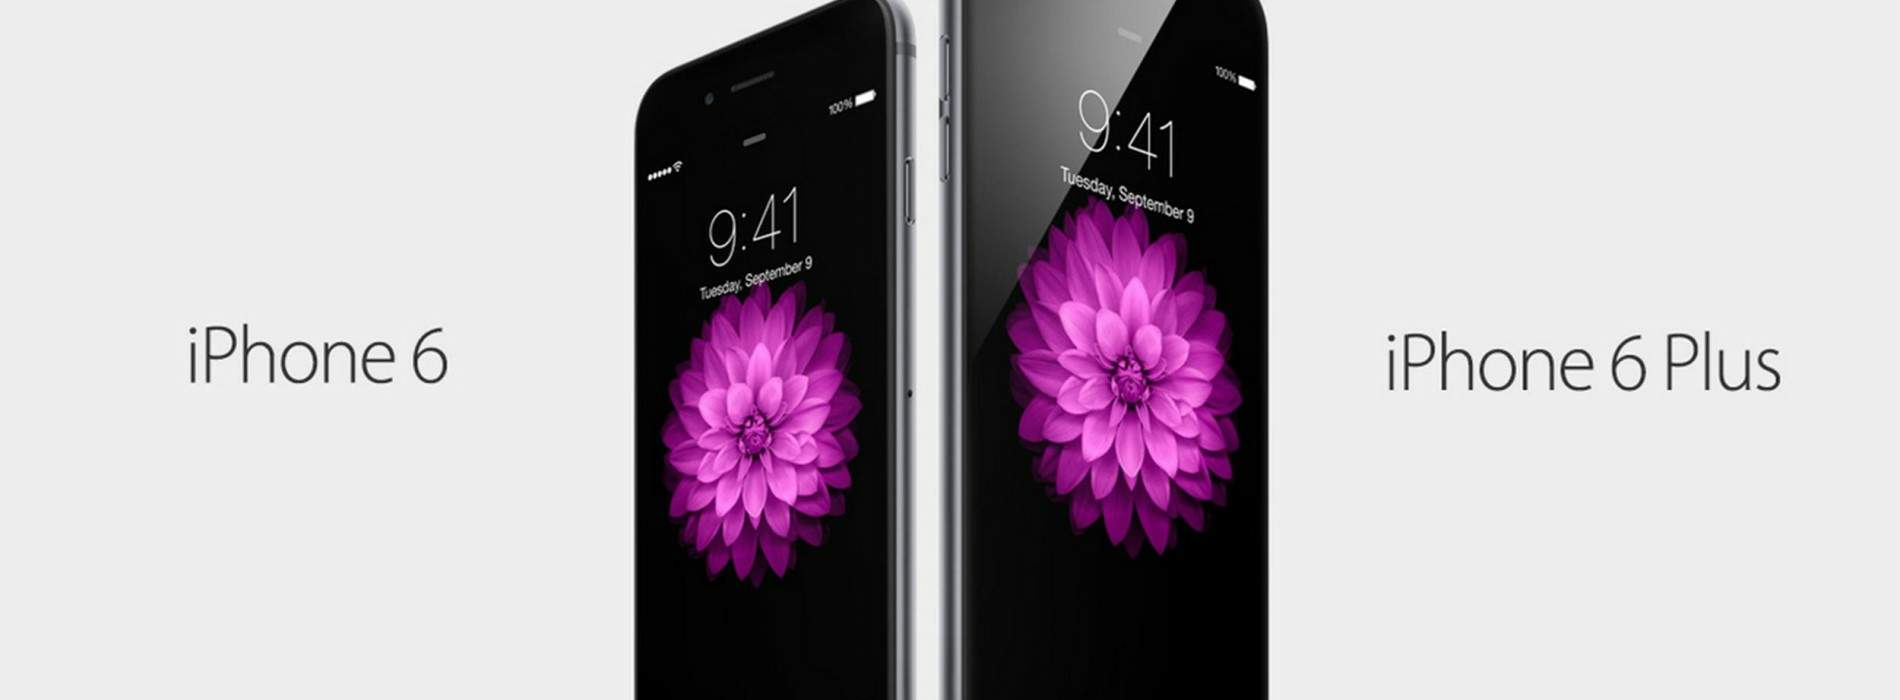 iPhone 6 y 6 Plus: sus detalles 'gadget'